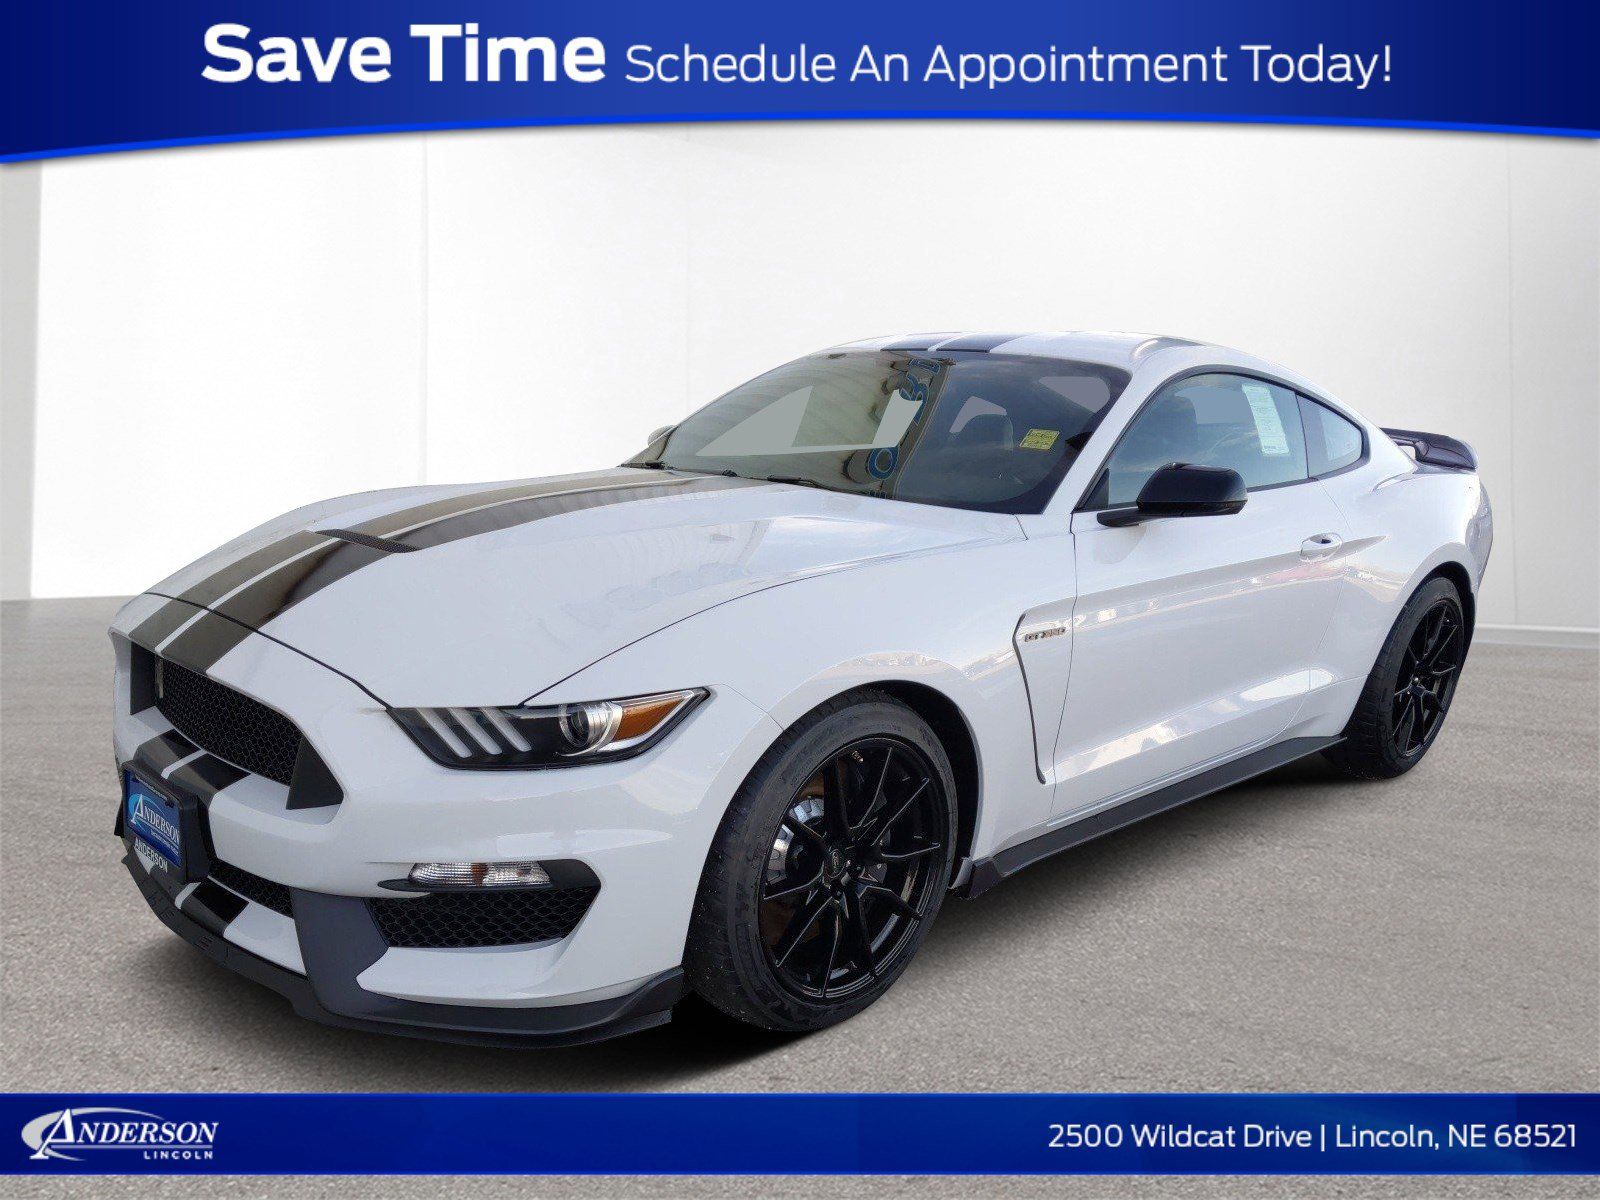 New 2020 Ford Mustang Shelby GT350 2dr Car for sale in Lincoln NE